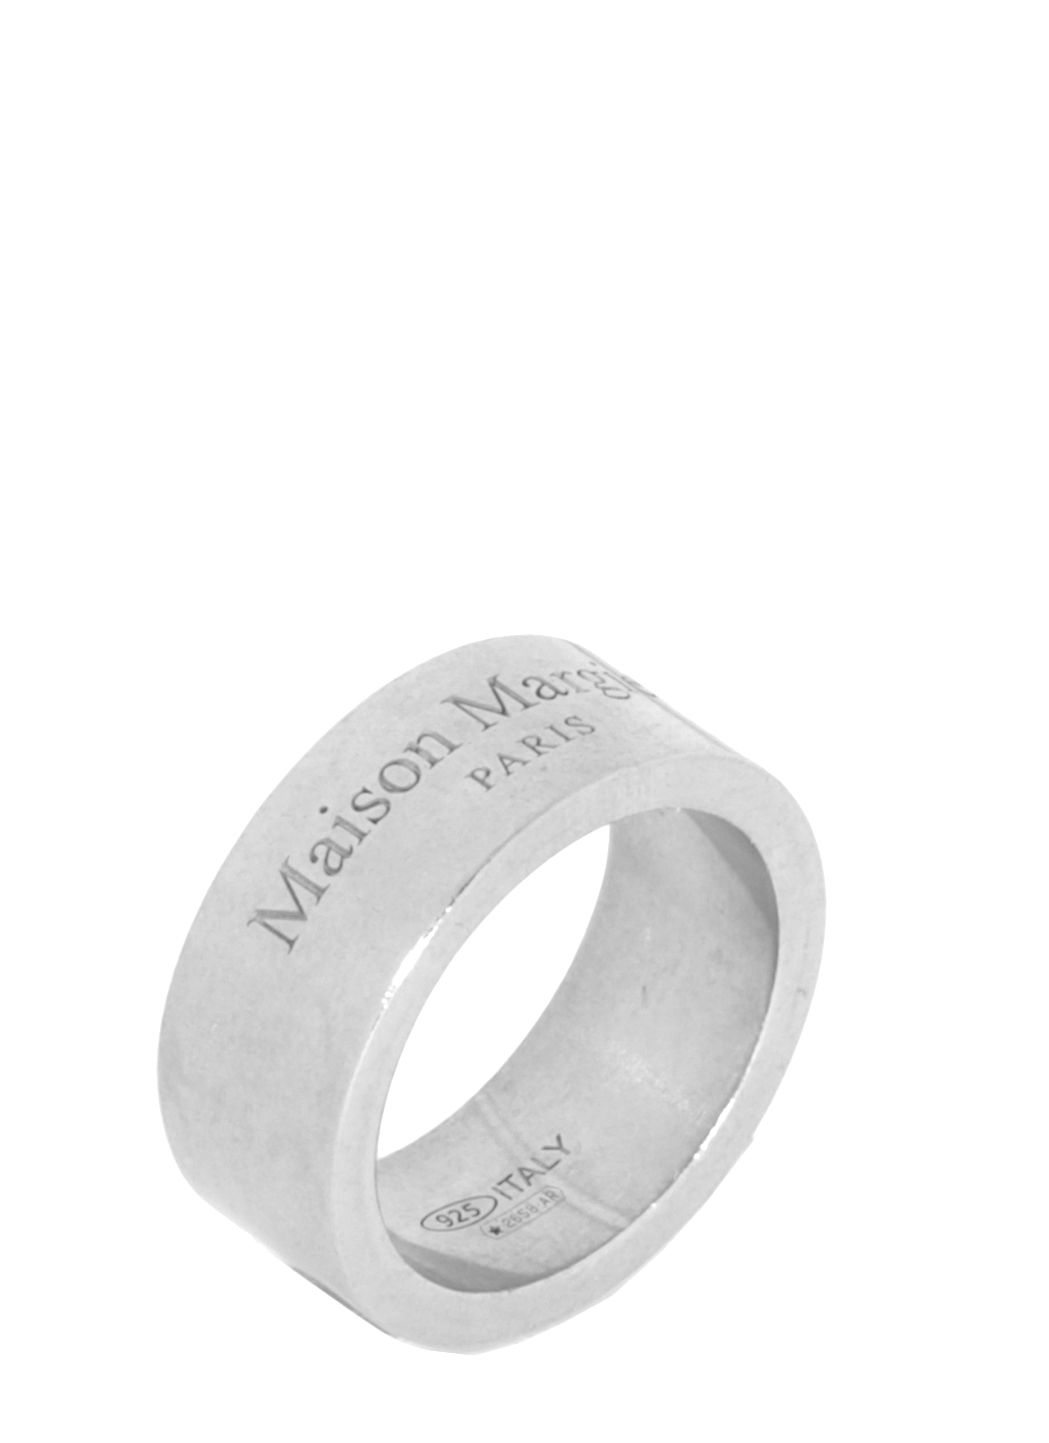 Silver ring with logo